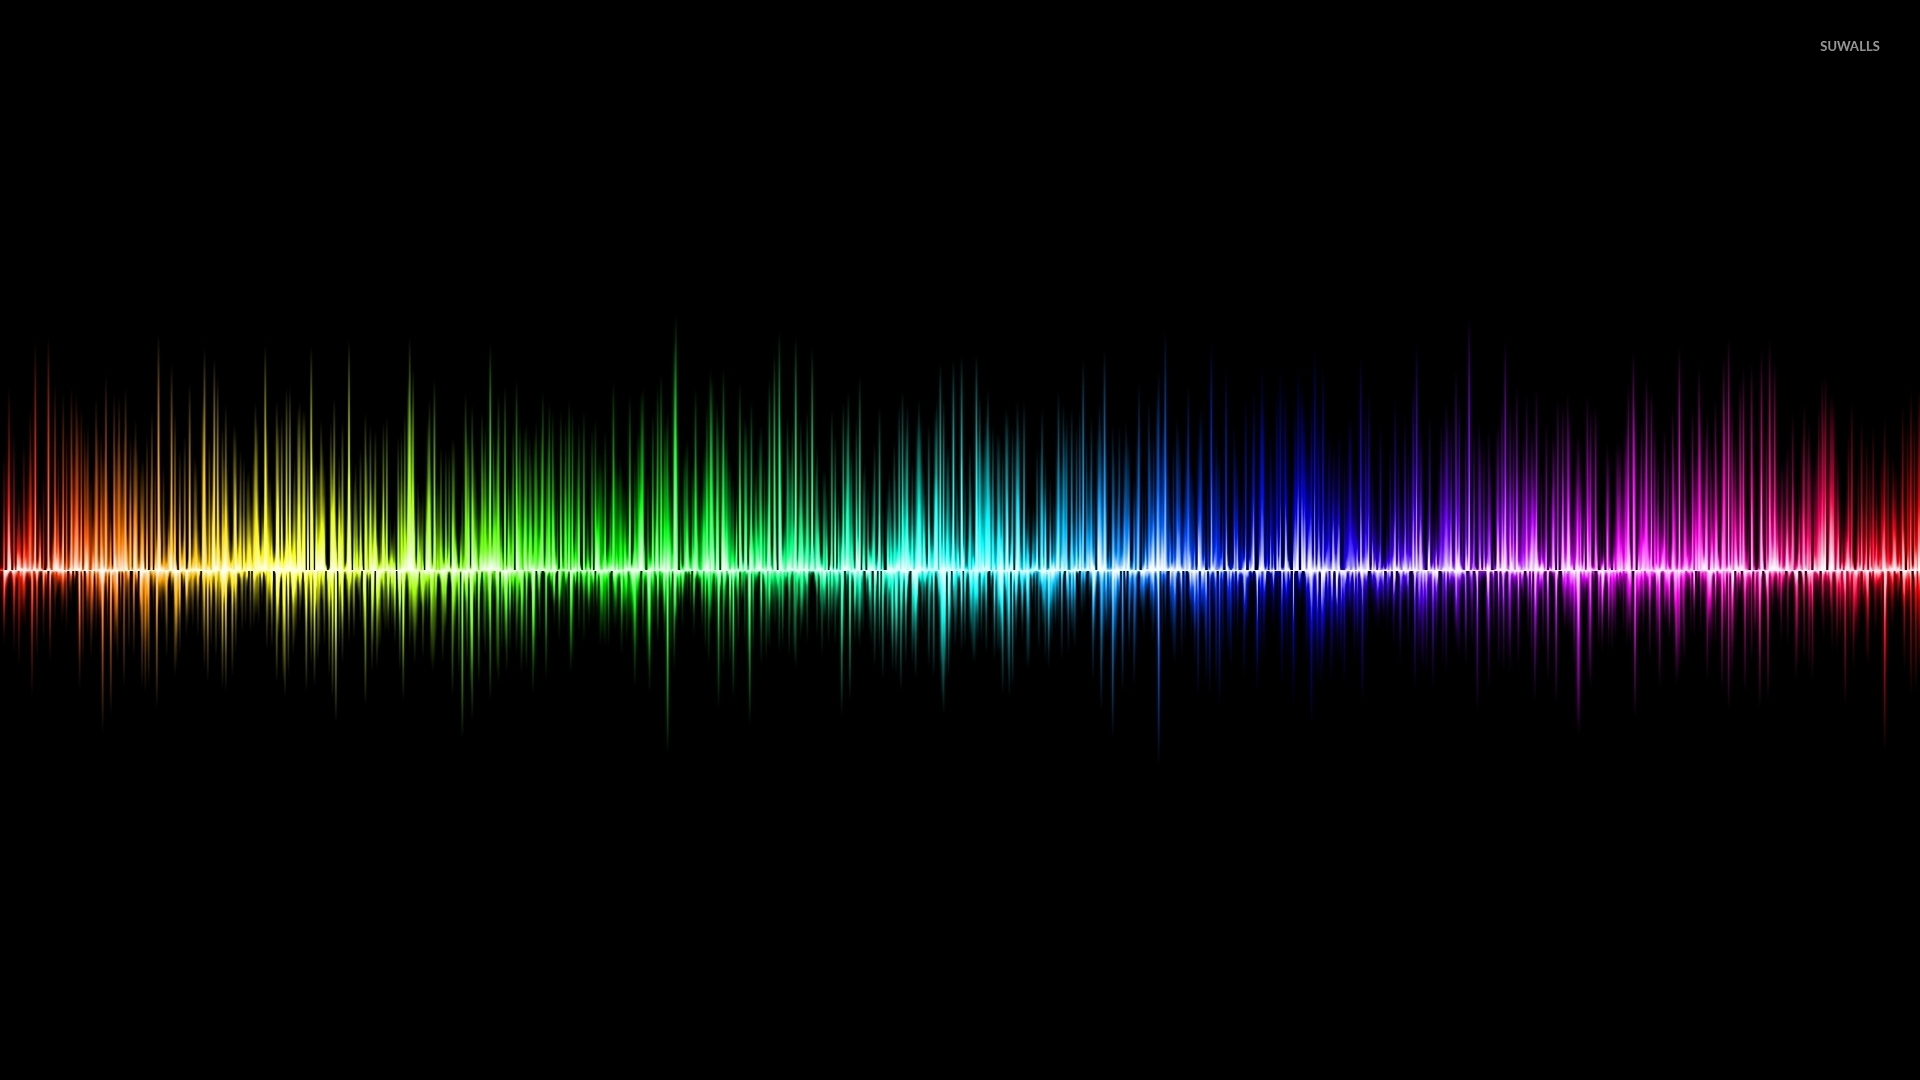 Audio Wave Wallpaper Imgkid Com The Image Kid Has It HD Wallpapers Download Free Images Wallpaper [1000image.com]